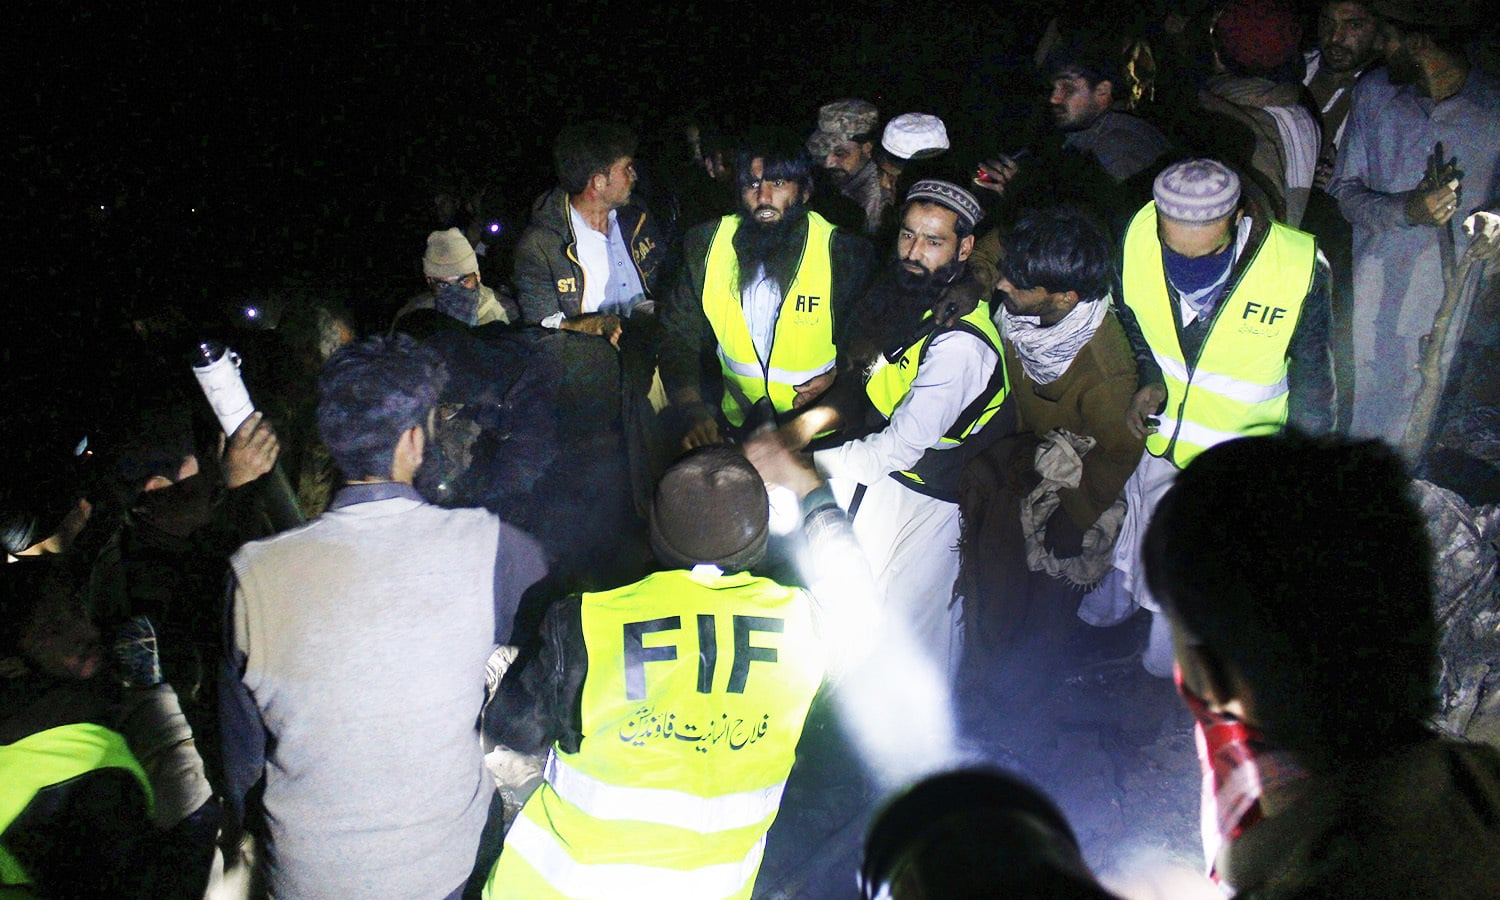 Pakistan Army troops and rescue workers collect remains of victims at the site of the plane crash. -AFP